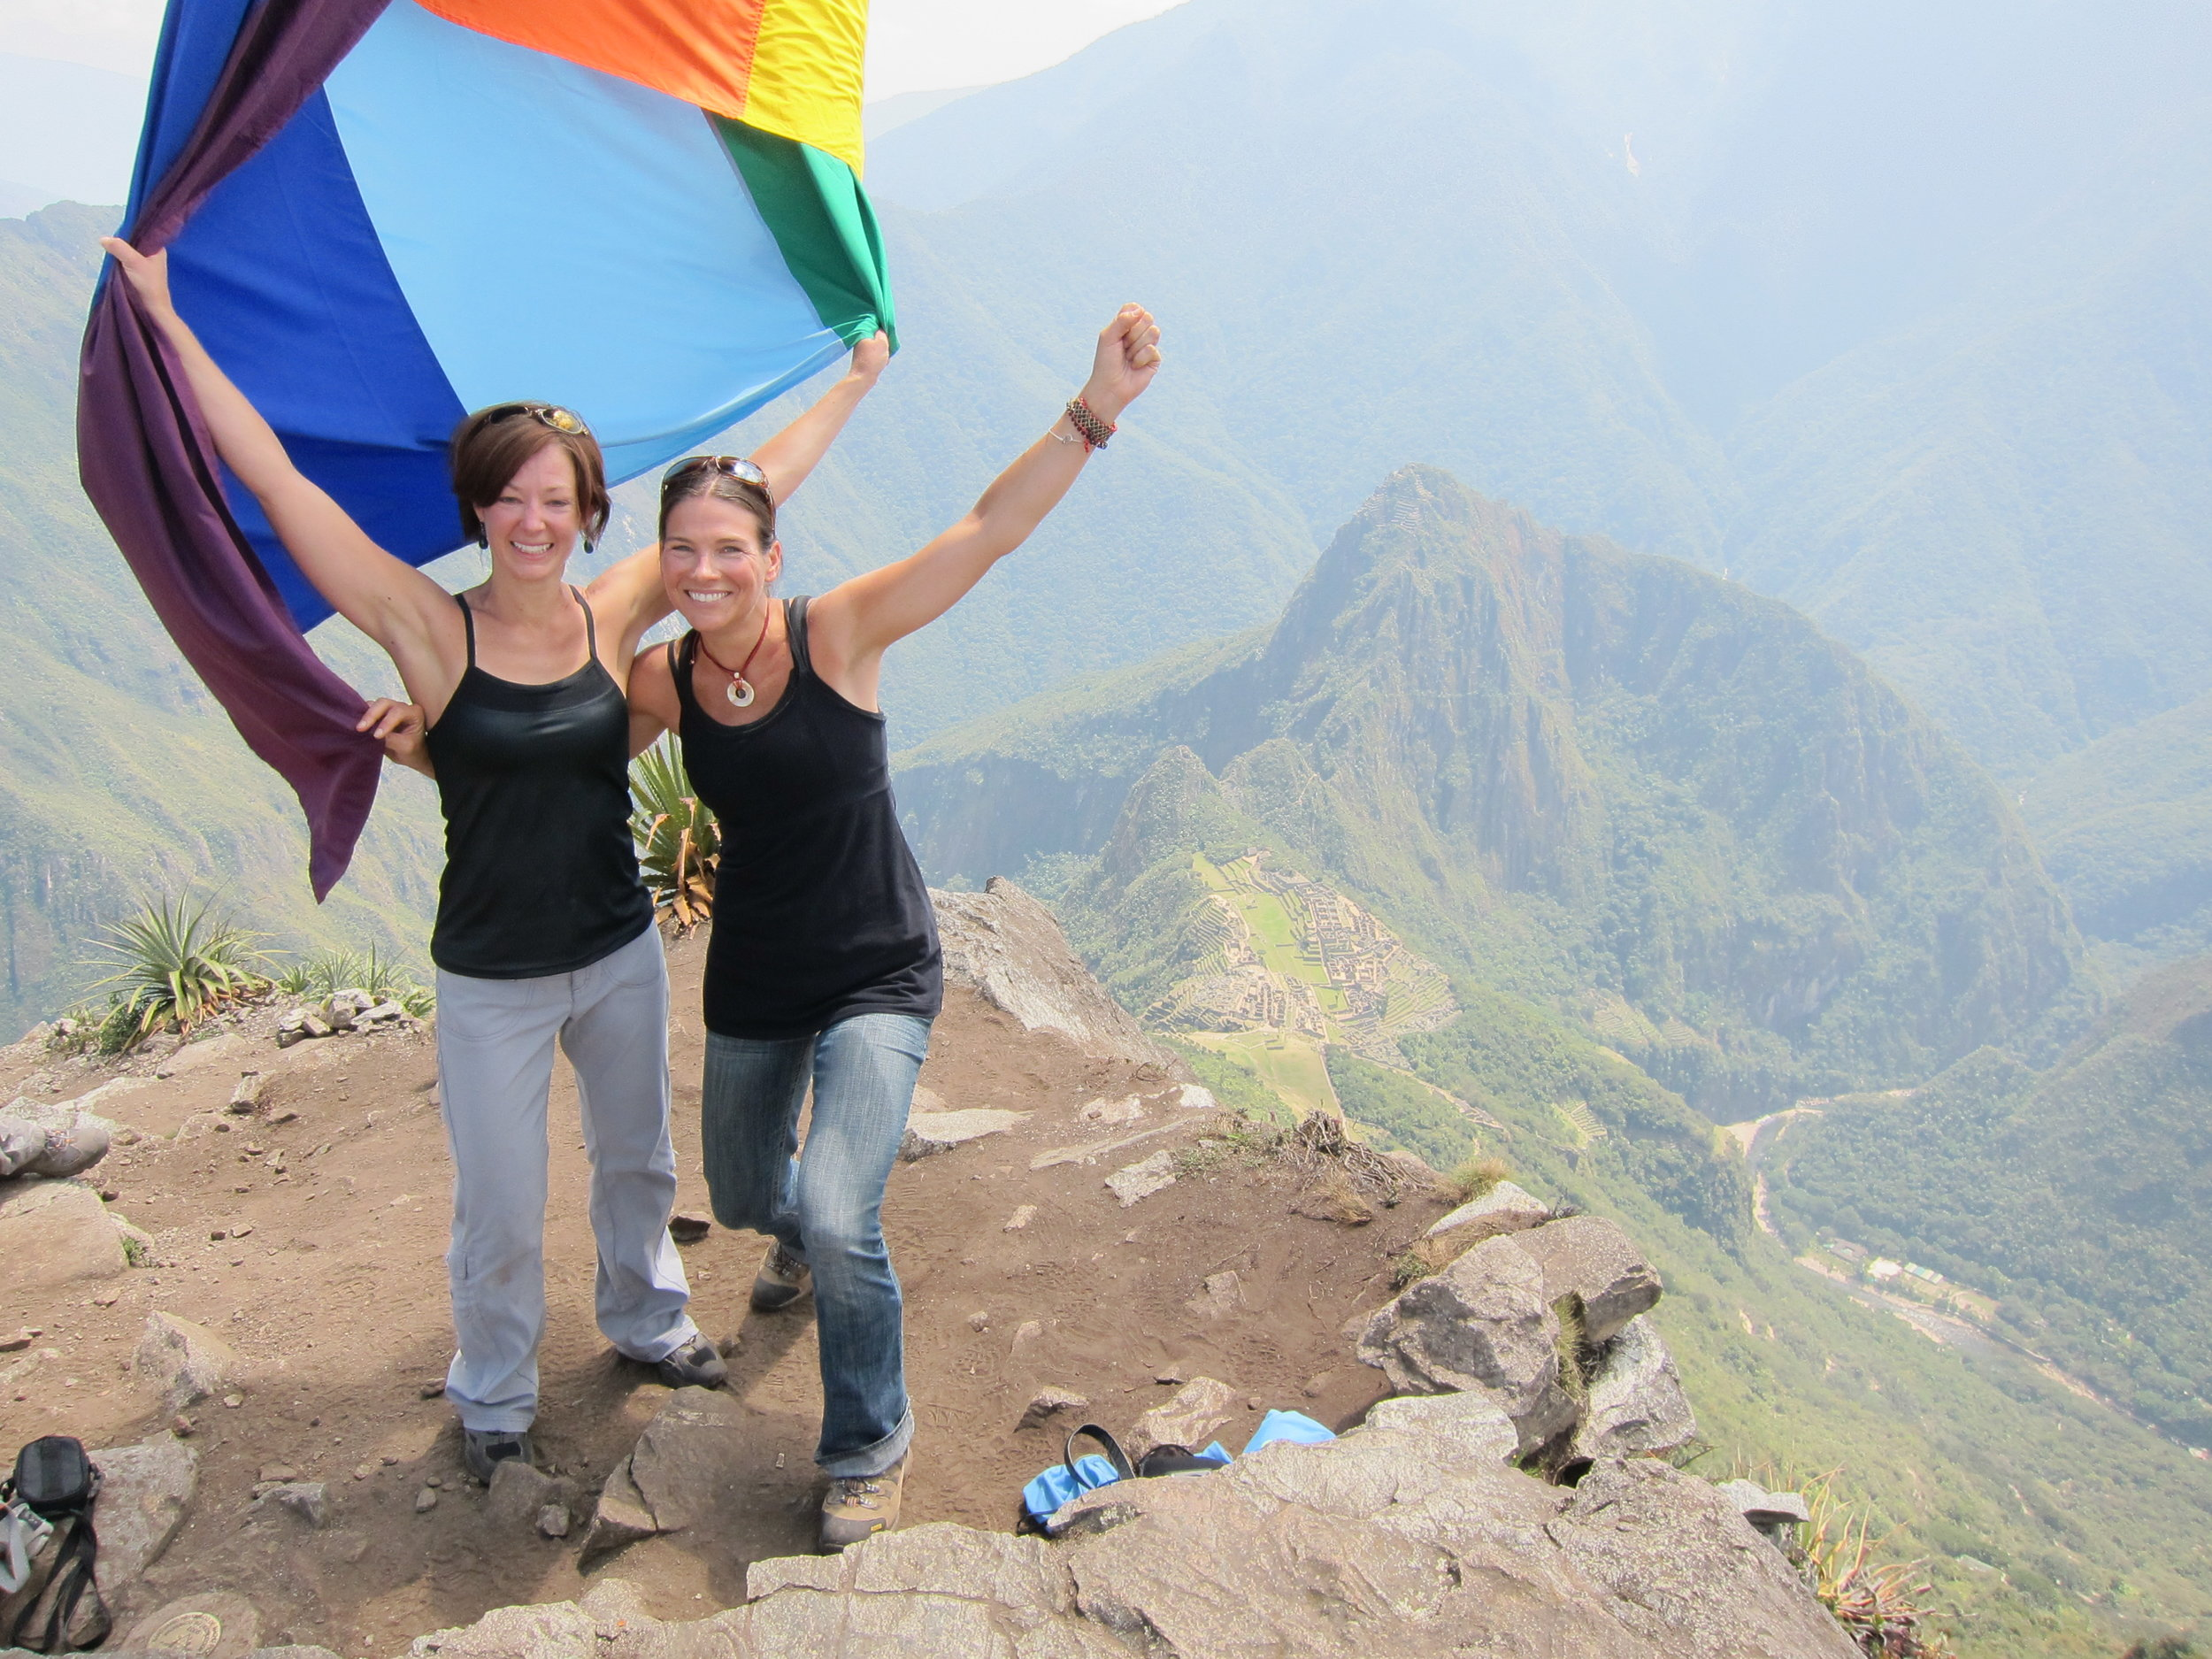 High up in Peru, with one of my adventure besties, celebrating an epic day above Machu Picchu.